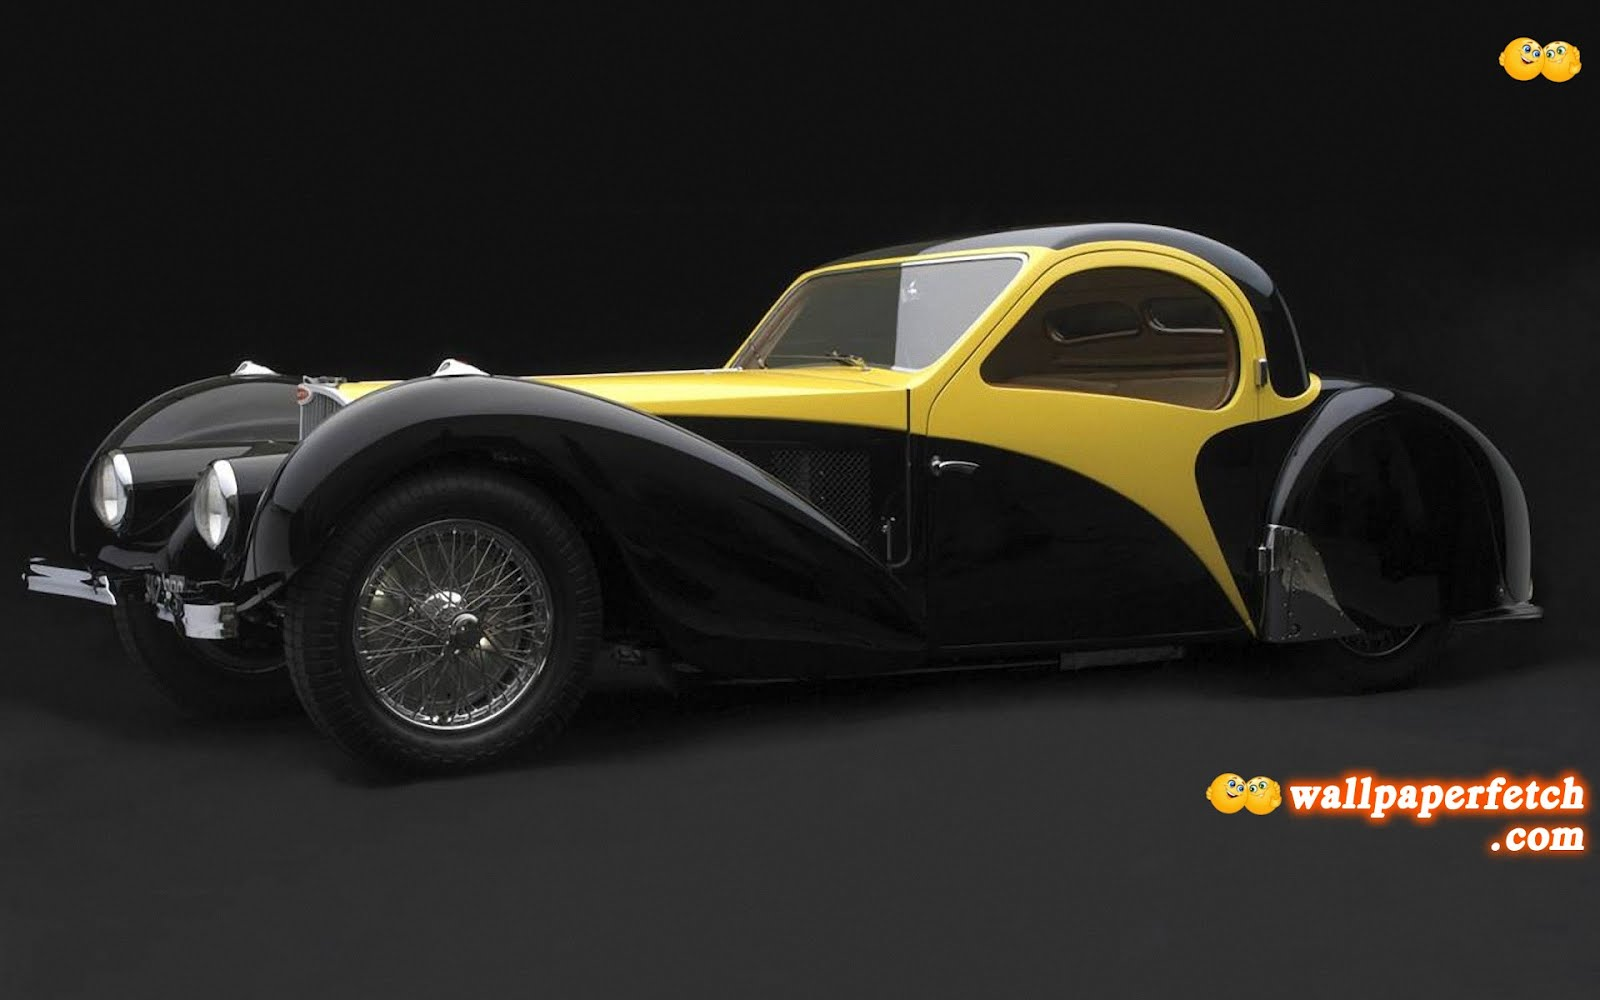 wallpaper fetch bugatti type 57 wallpapers. Black Bedroom Furniture Sets. Home Design Ideas